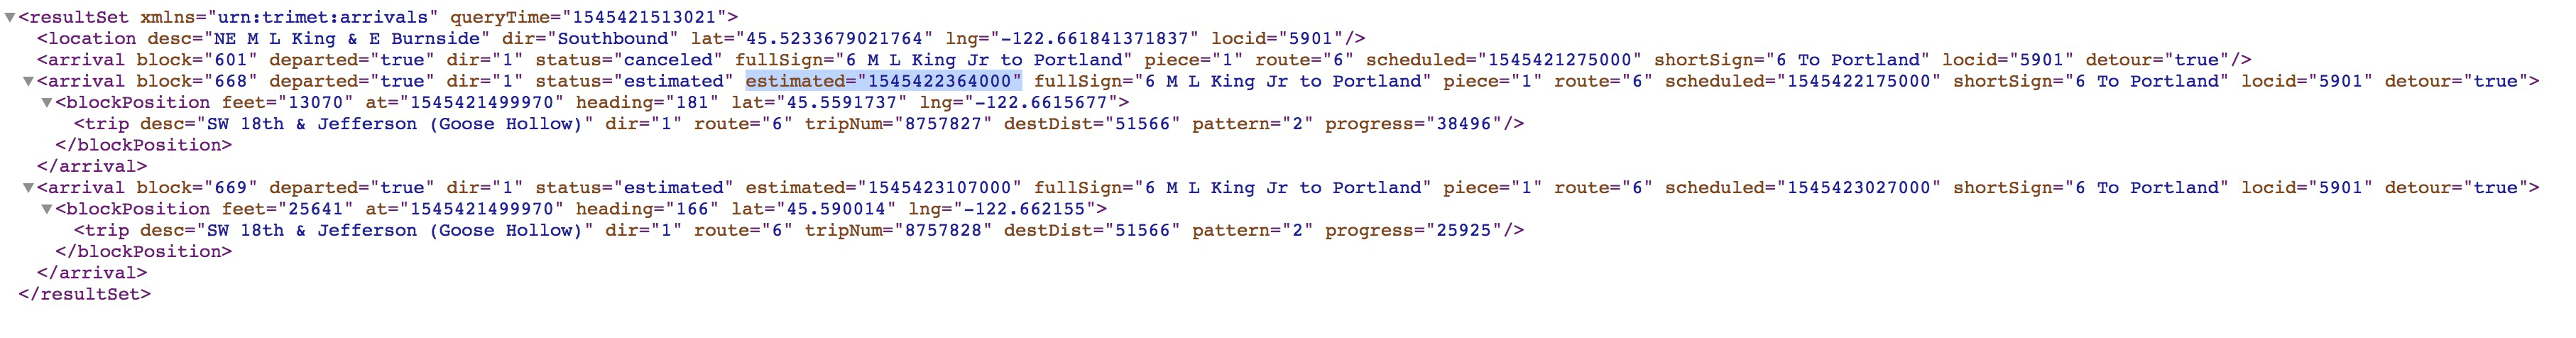 Trimet API results